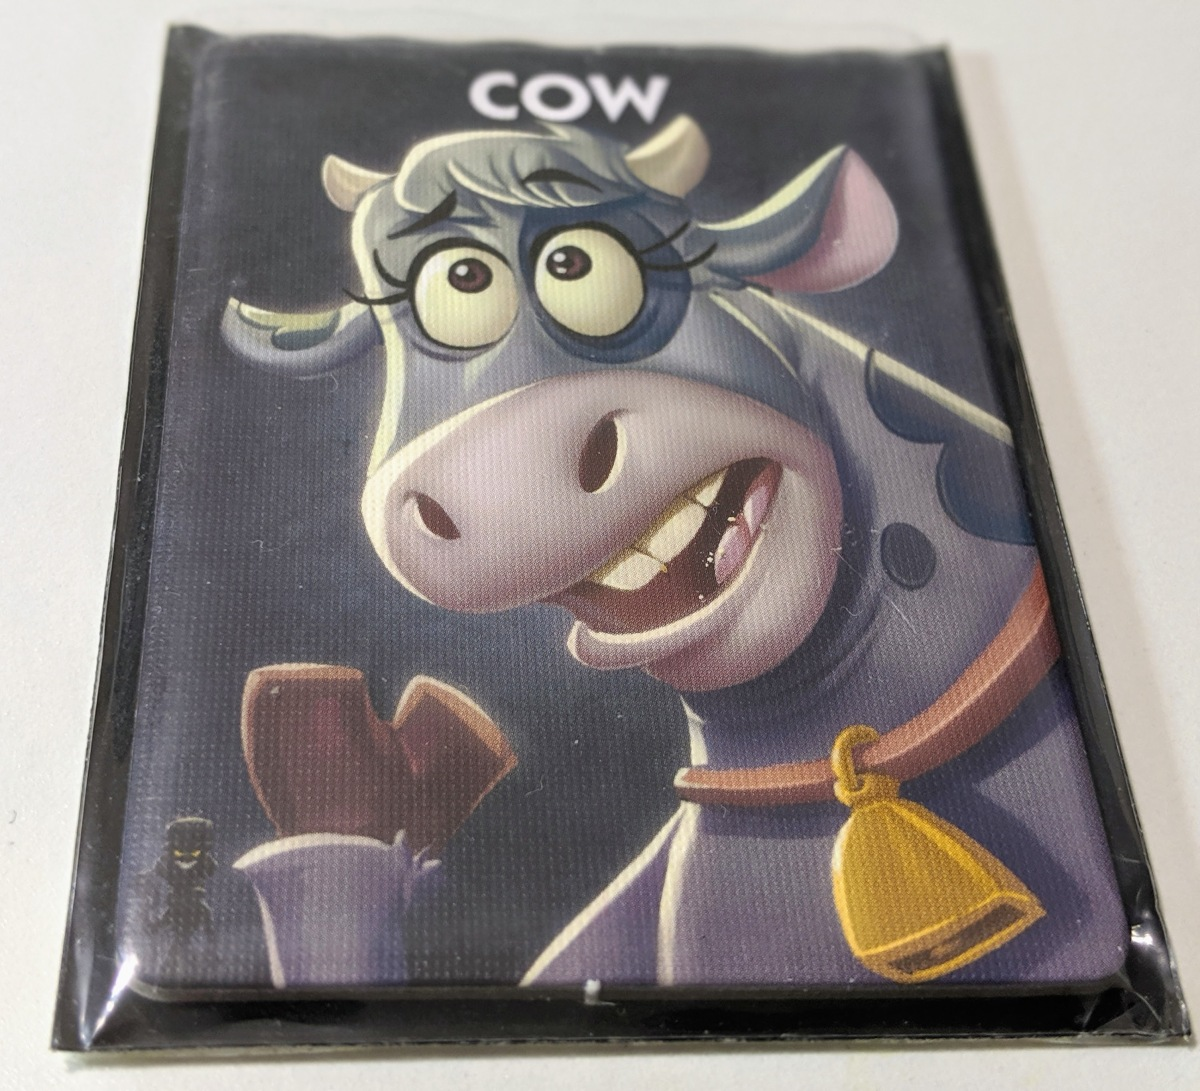 One Night Ultimate Alien: Tipping Cows isFun!